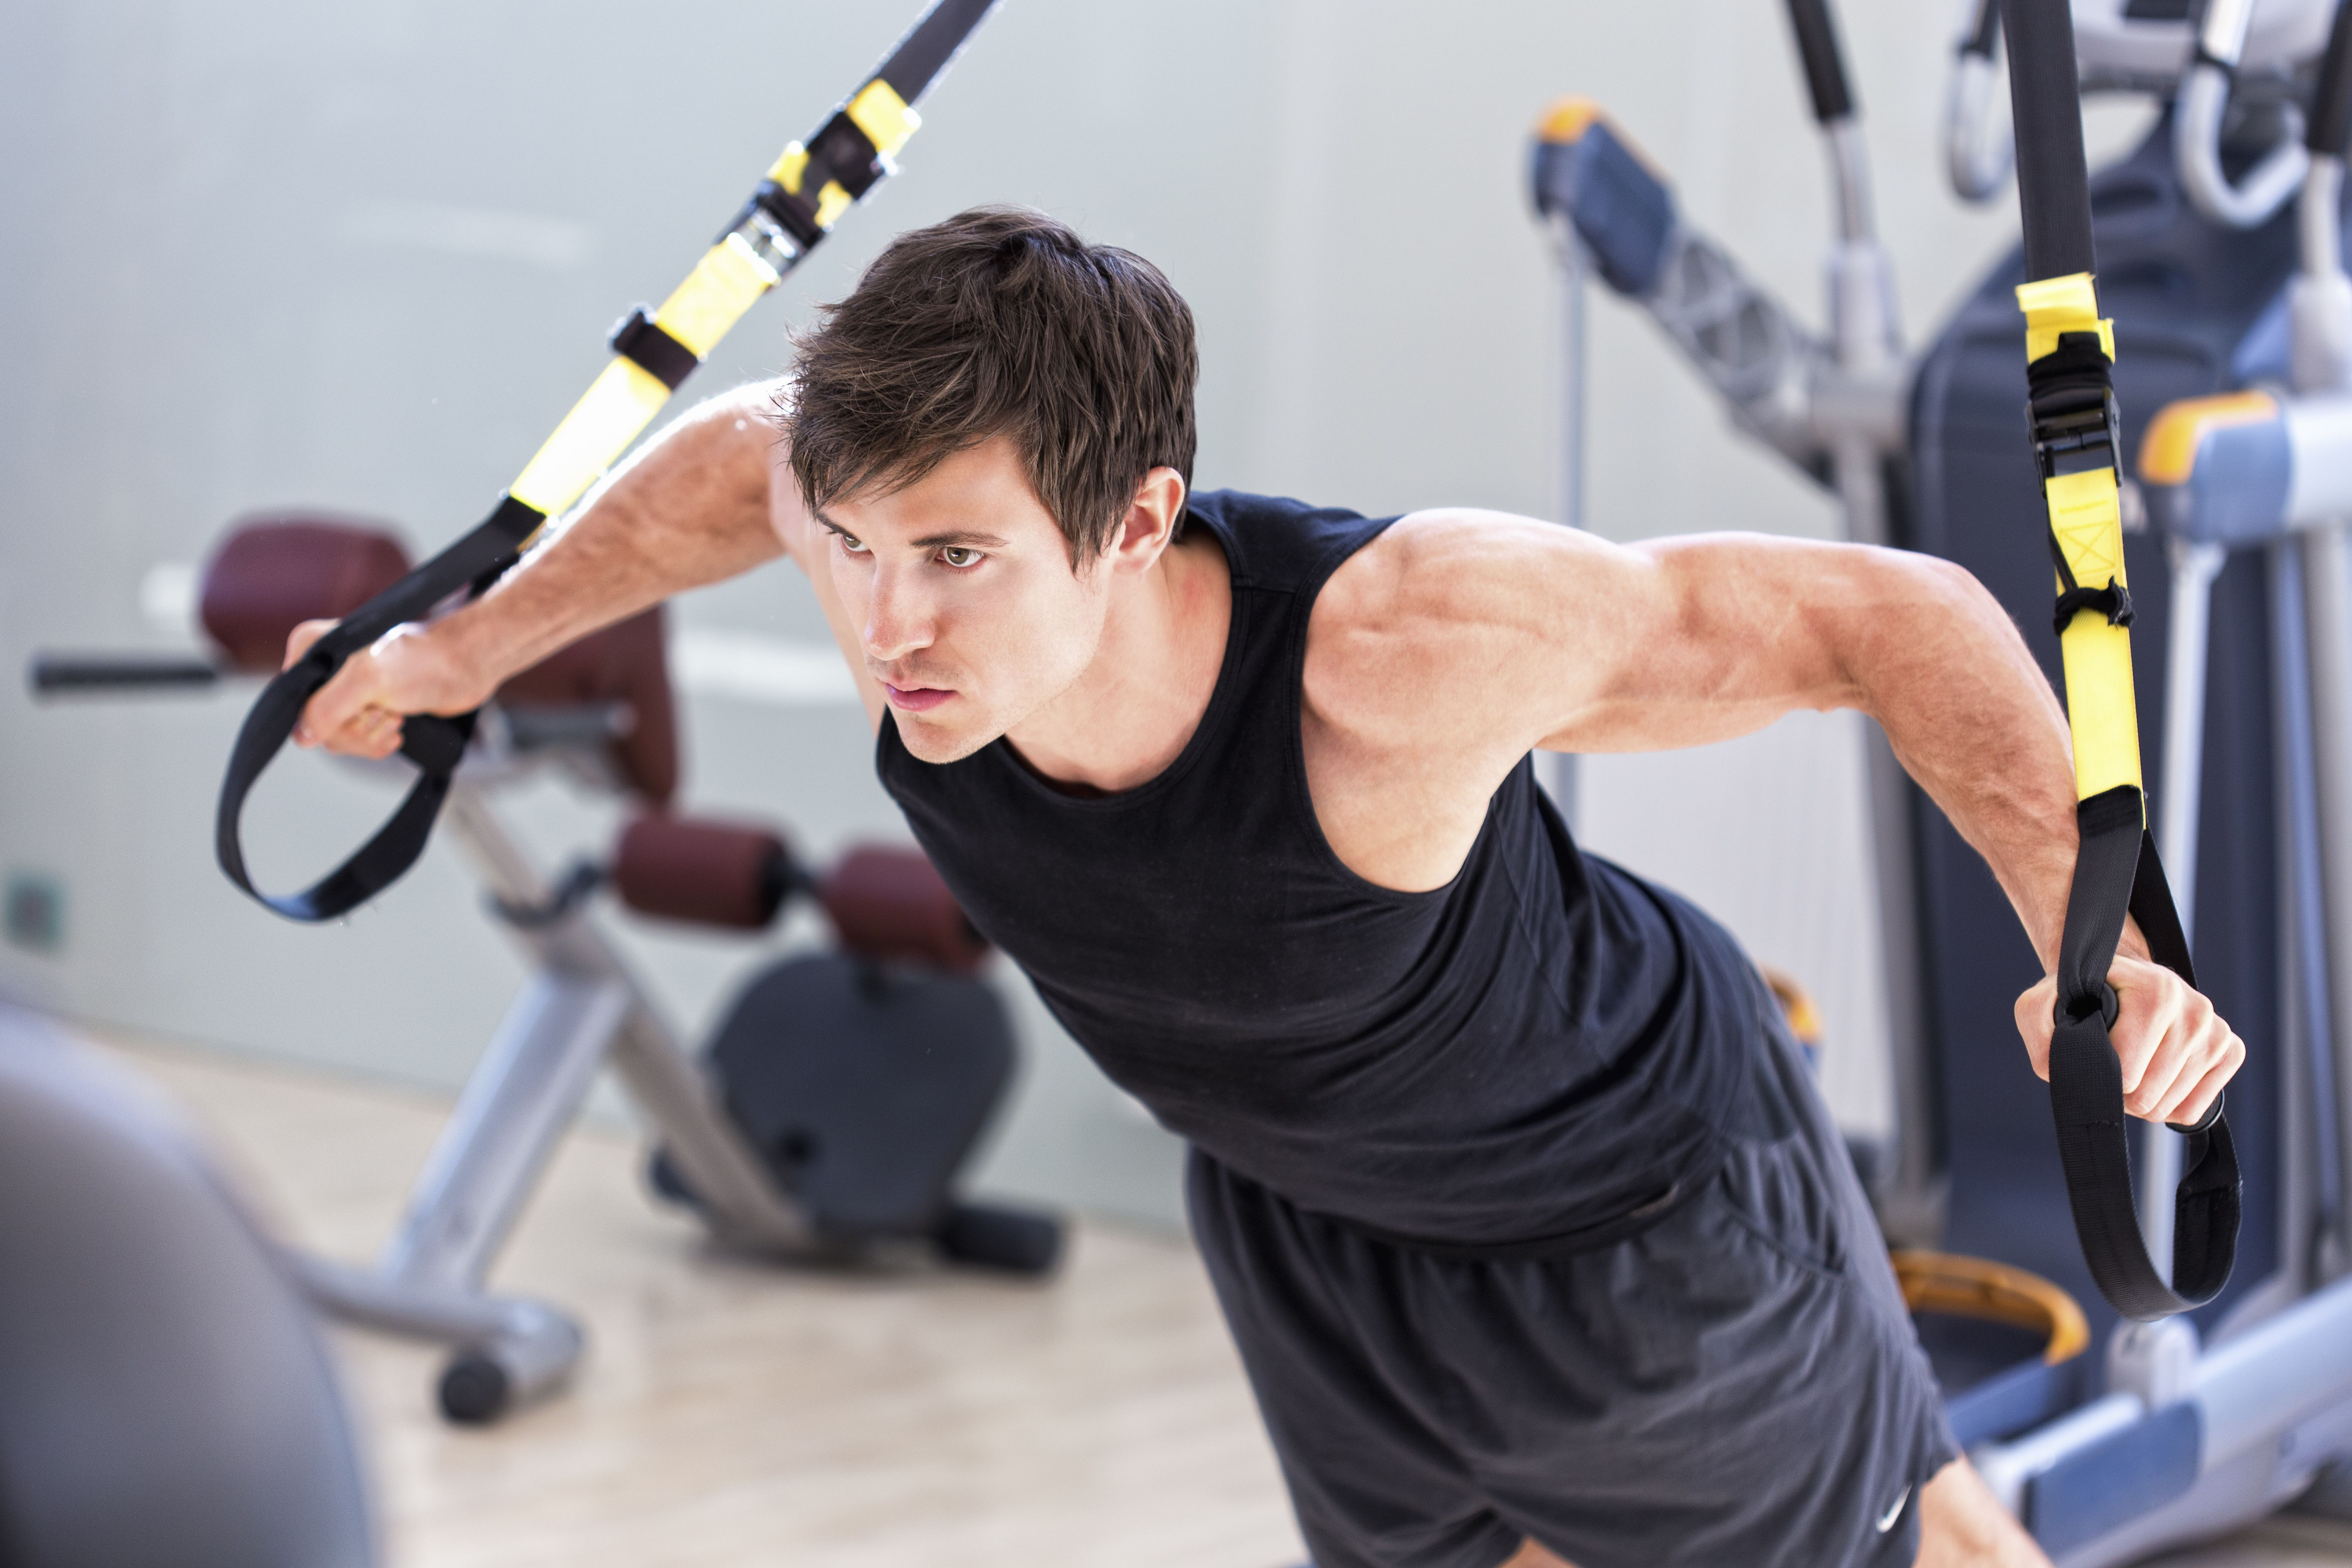 How TRX Training Improves Strength, Balance, and Flexibility